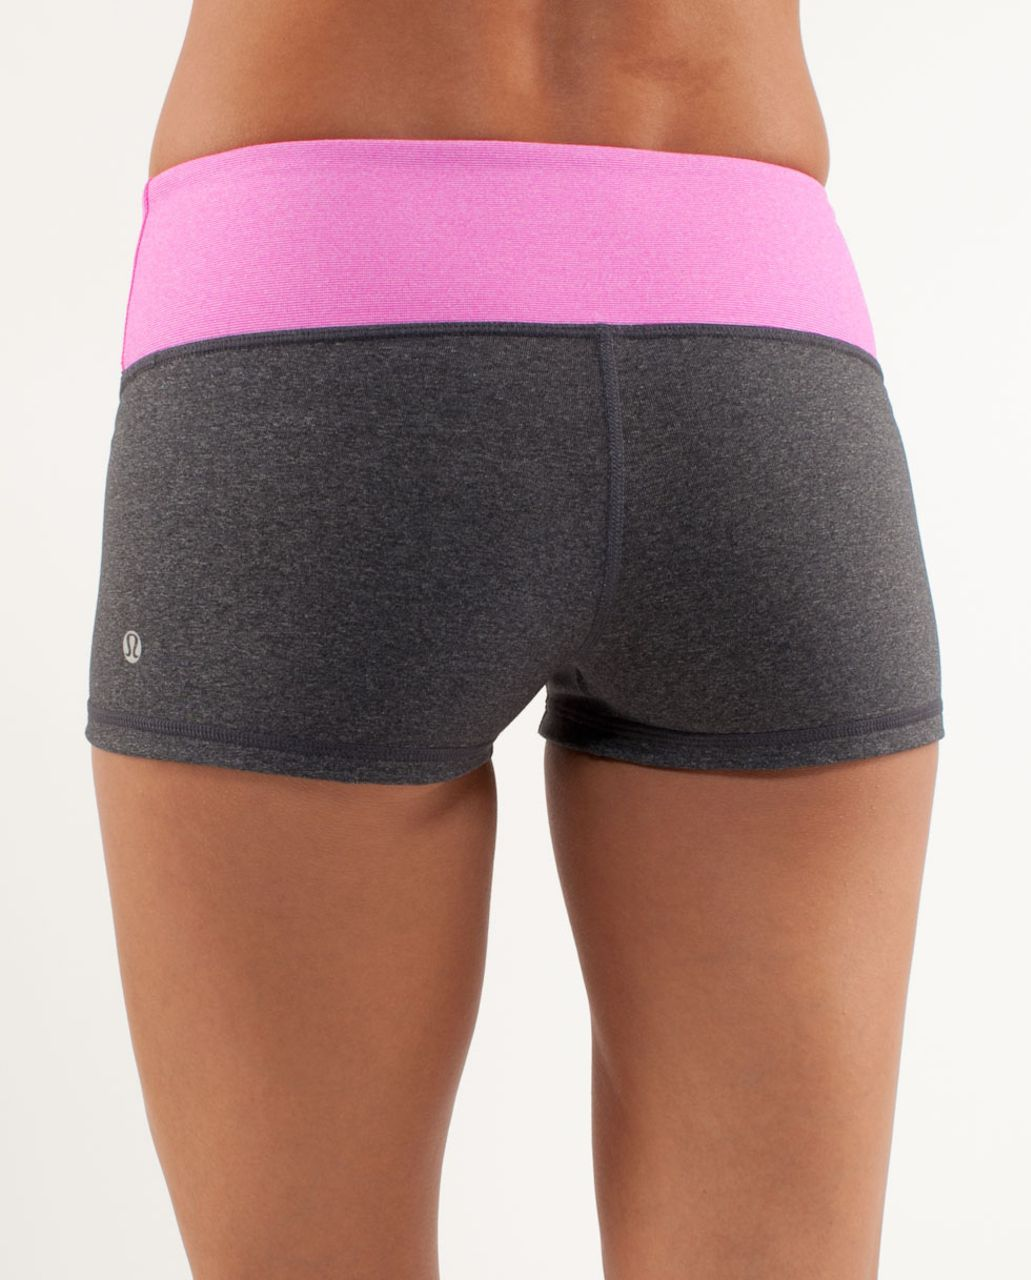 Lululemon Boogie Short - Heathered Coal /  Paris Pink White Microstripe /  Paris Pink